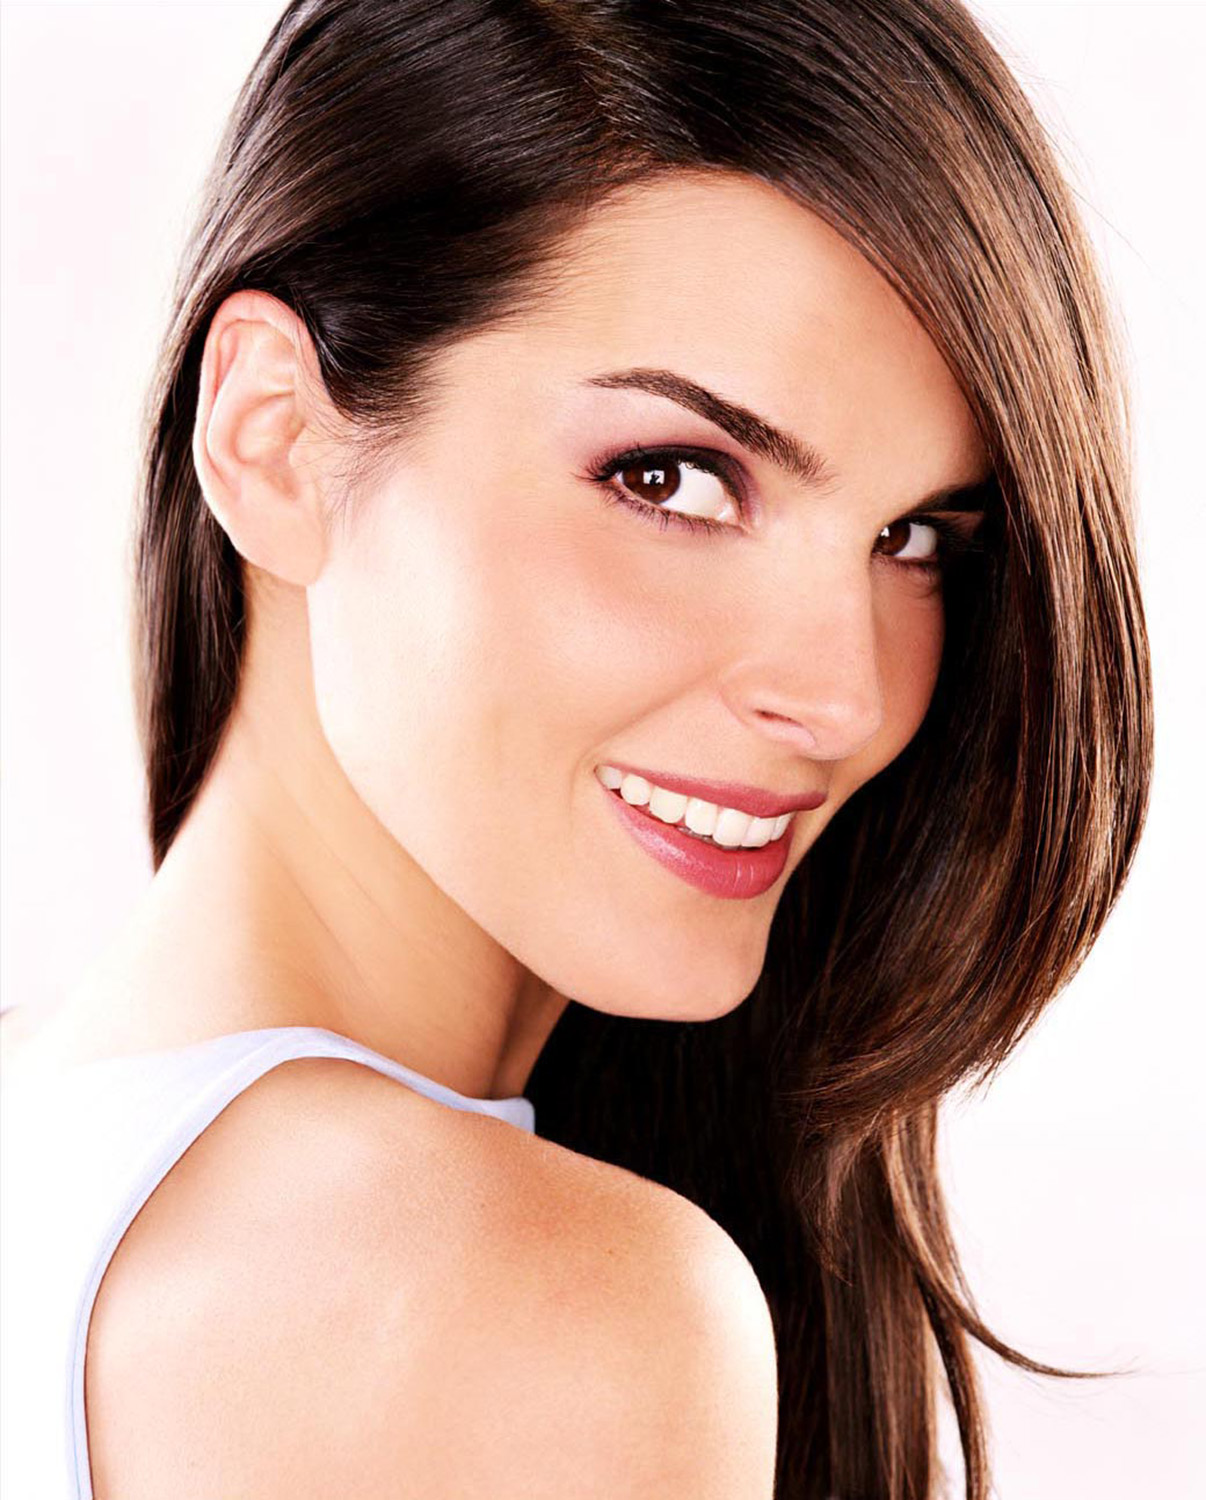 Actress and Celebrity Pictures: Angie Harmon